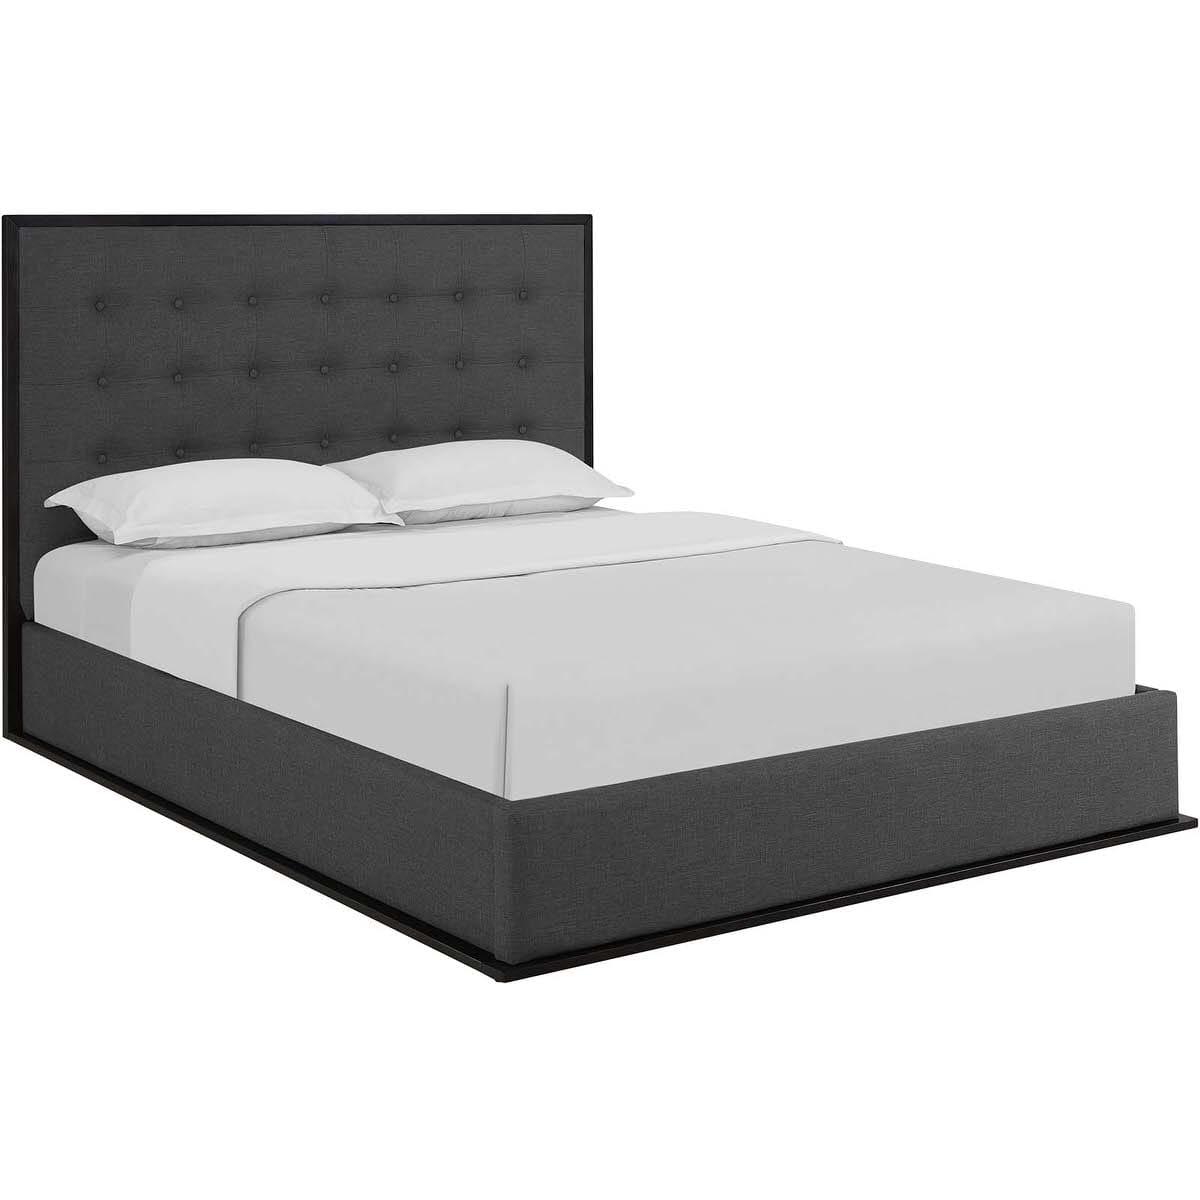 Madeline Queen Upholstered Bed Frame Cappuccino Smoke by Modern Living